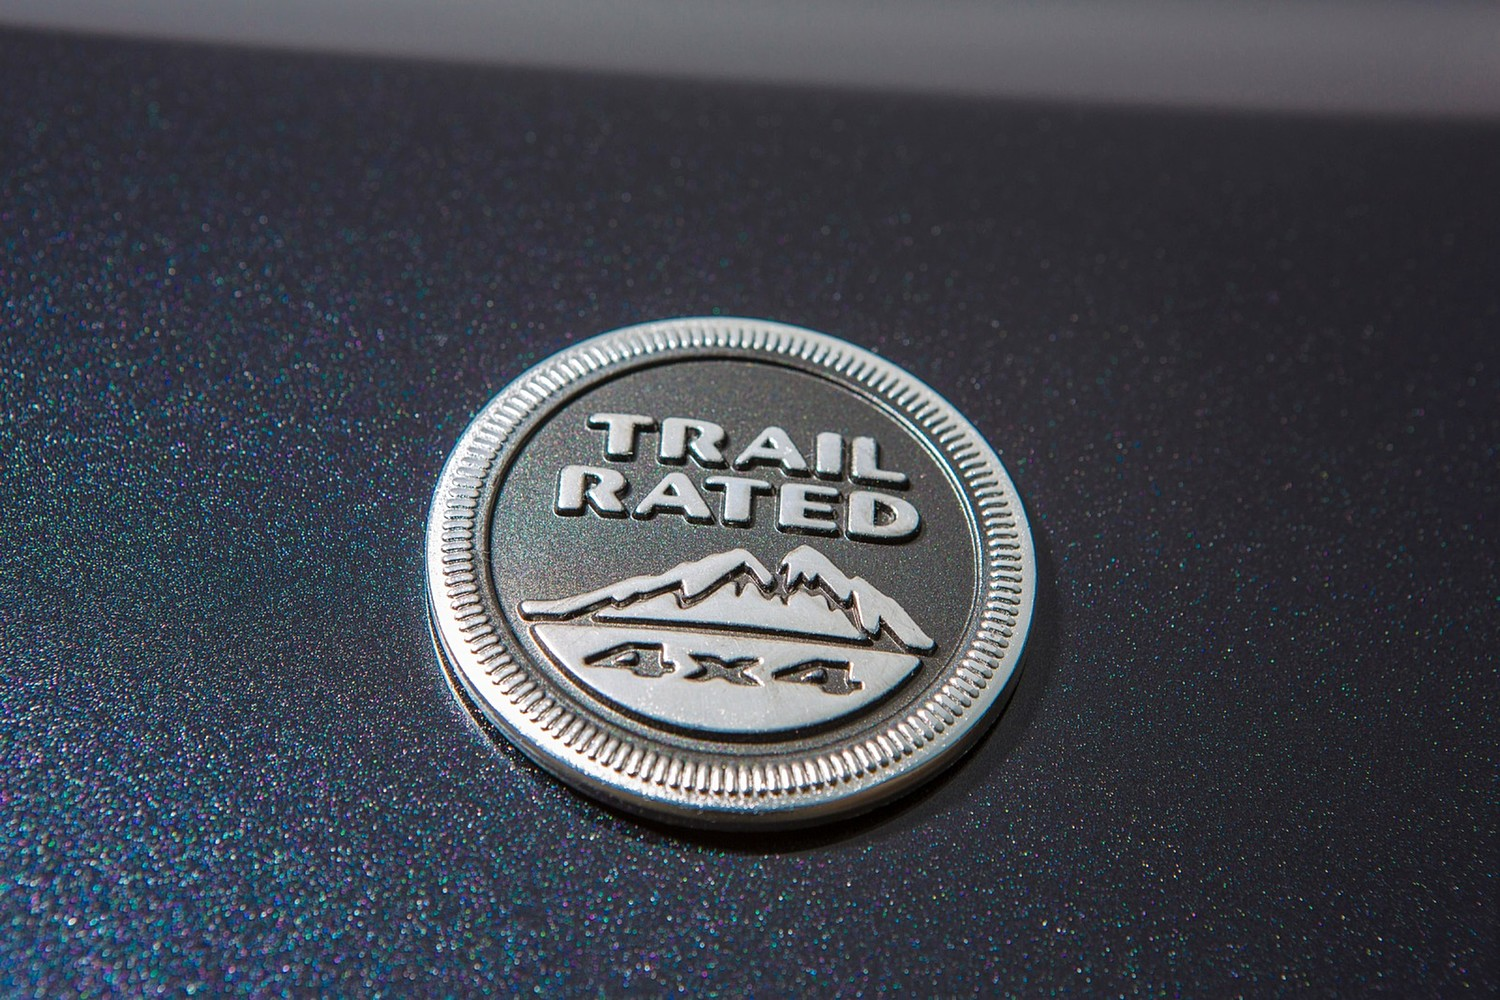 Jeep Grand Cherokee Limited 4dr SUV Fender Badge (2015 model year shown)